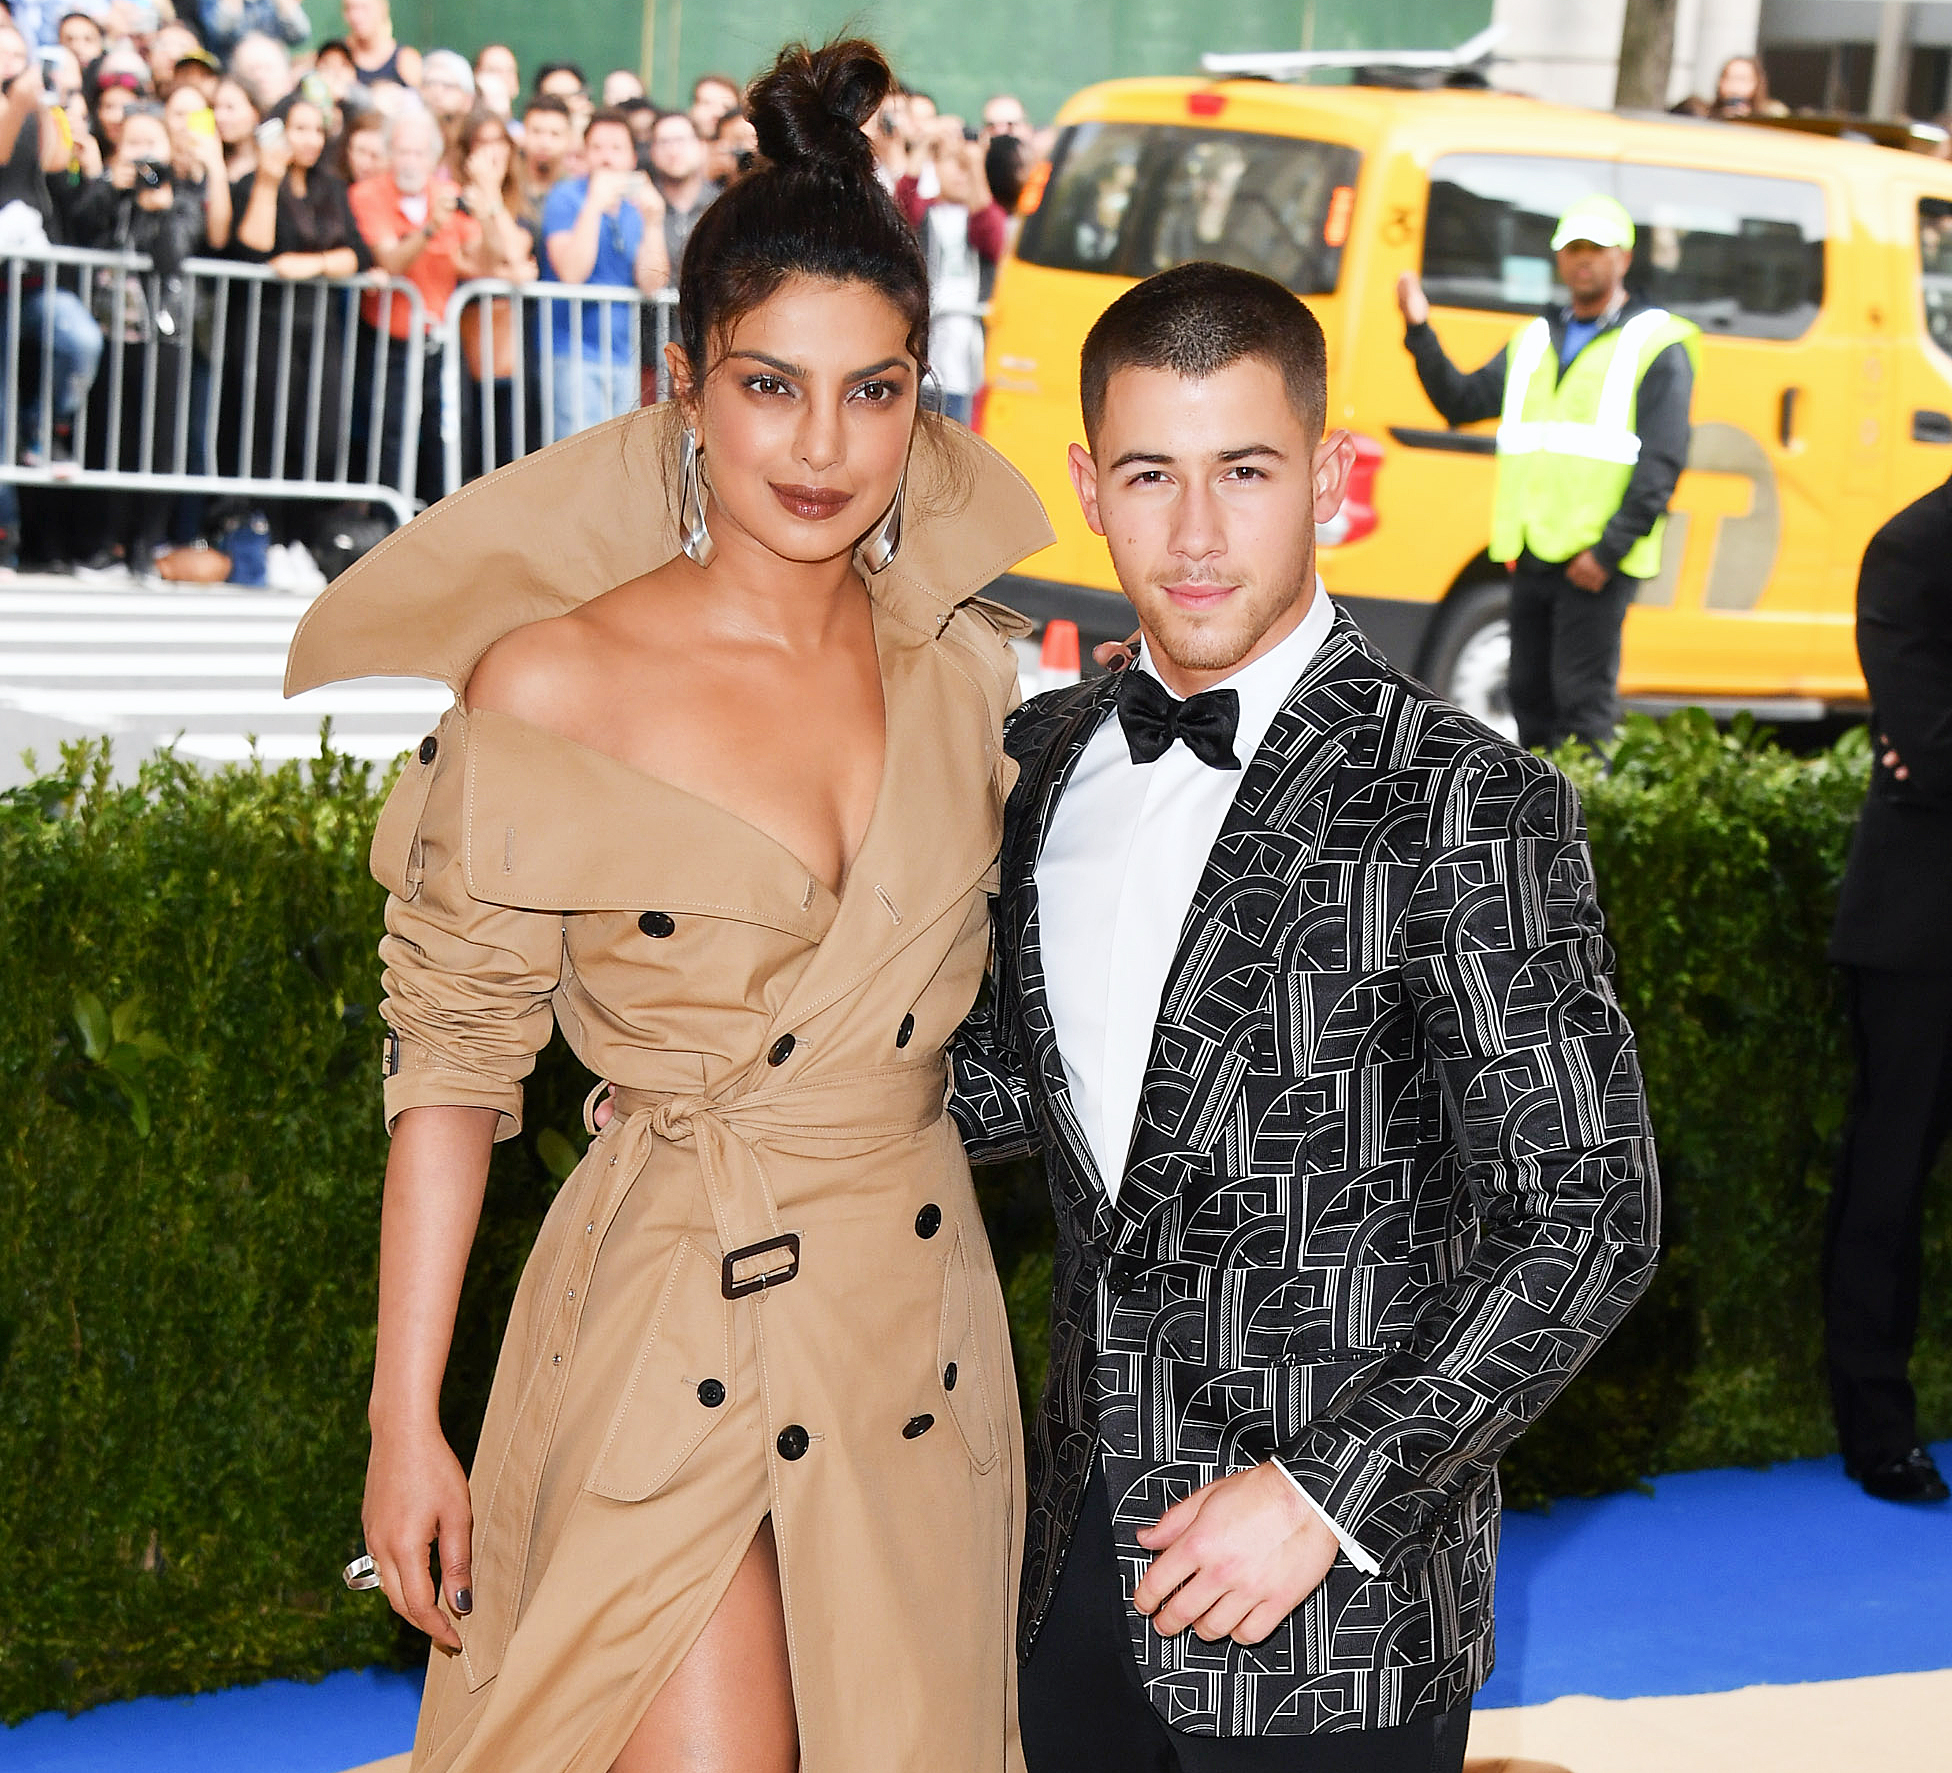 Nick Jonas and Priyanka Chopra dating?